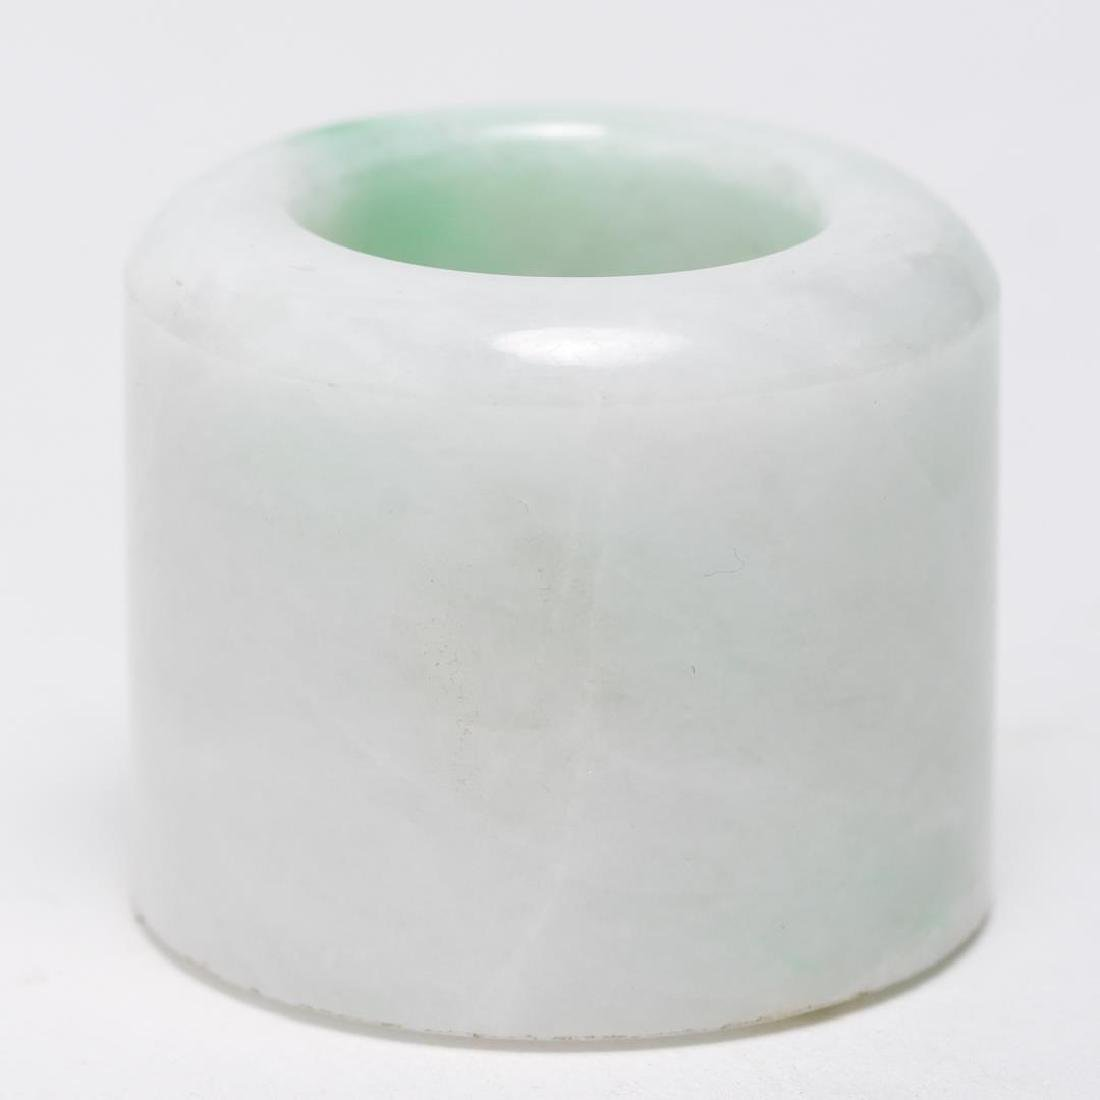 Chinese Mottled Jade Archer's or Thumb Ring, Man's - 3